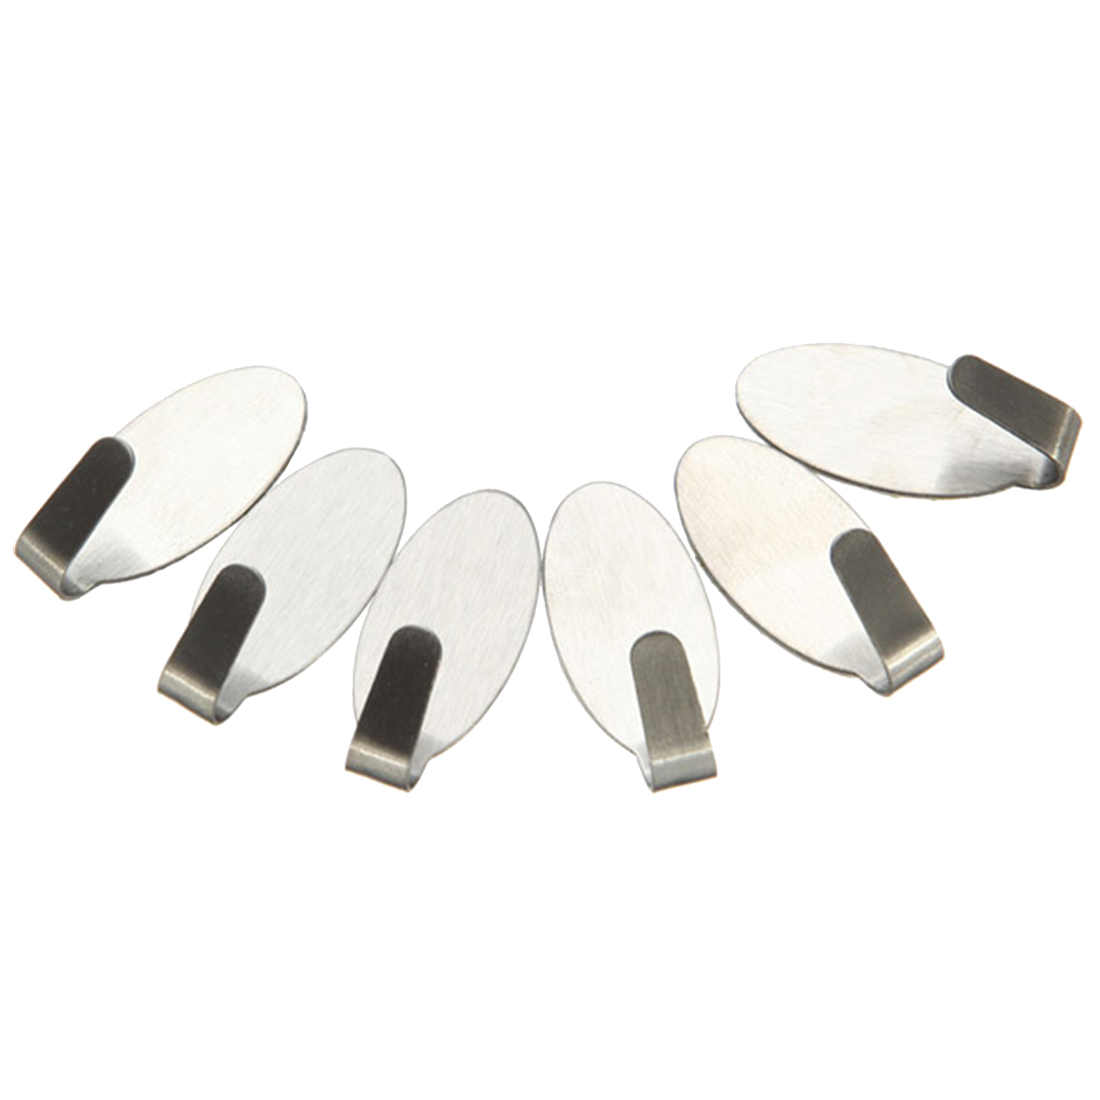 Hot 6 Stainless Steel Self Adhesive Stick Sticky On Door Wall Peg Hanger Holder Hook Pattern: Oval